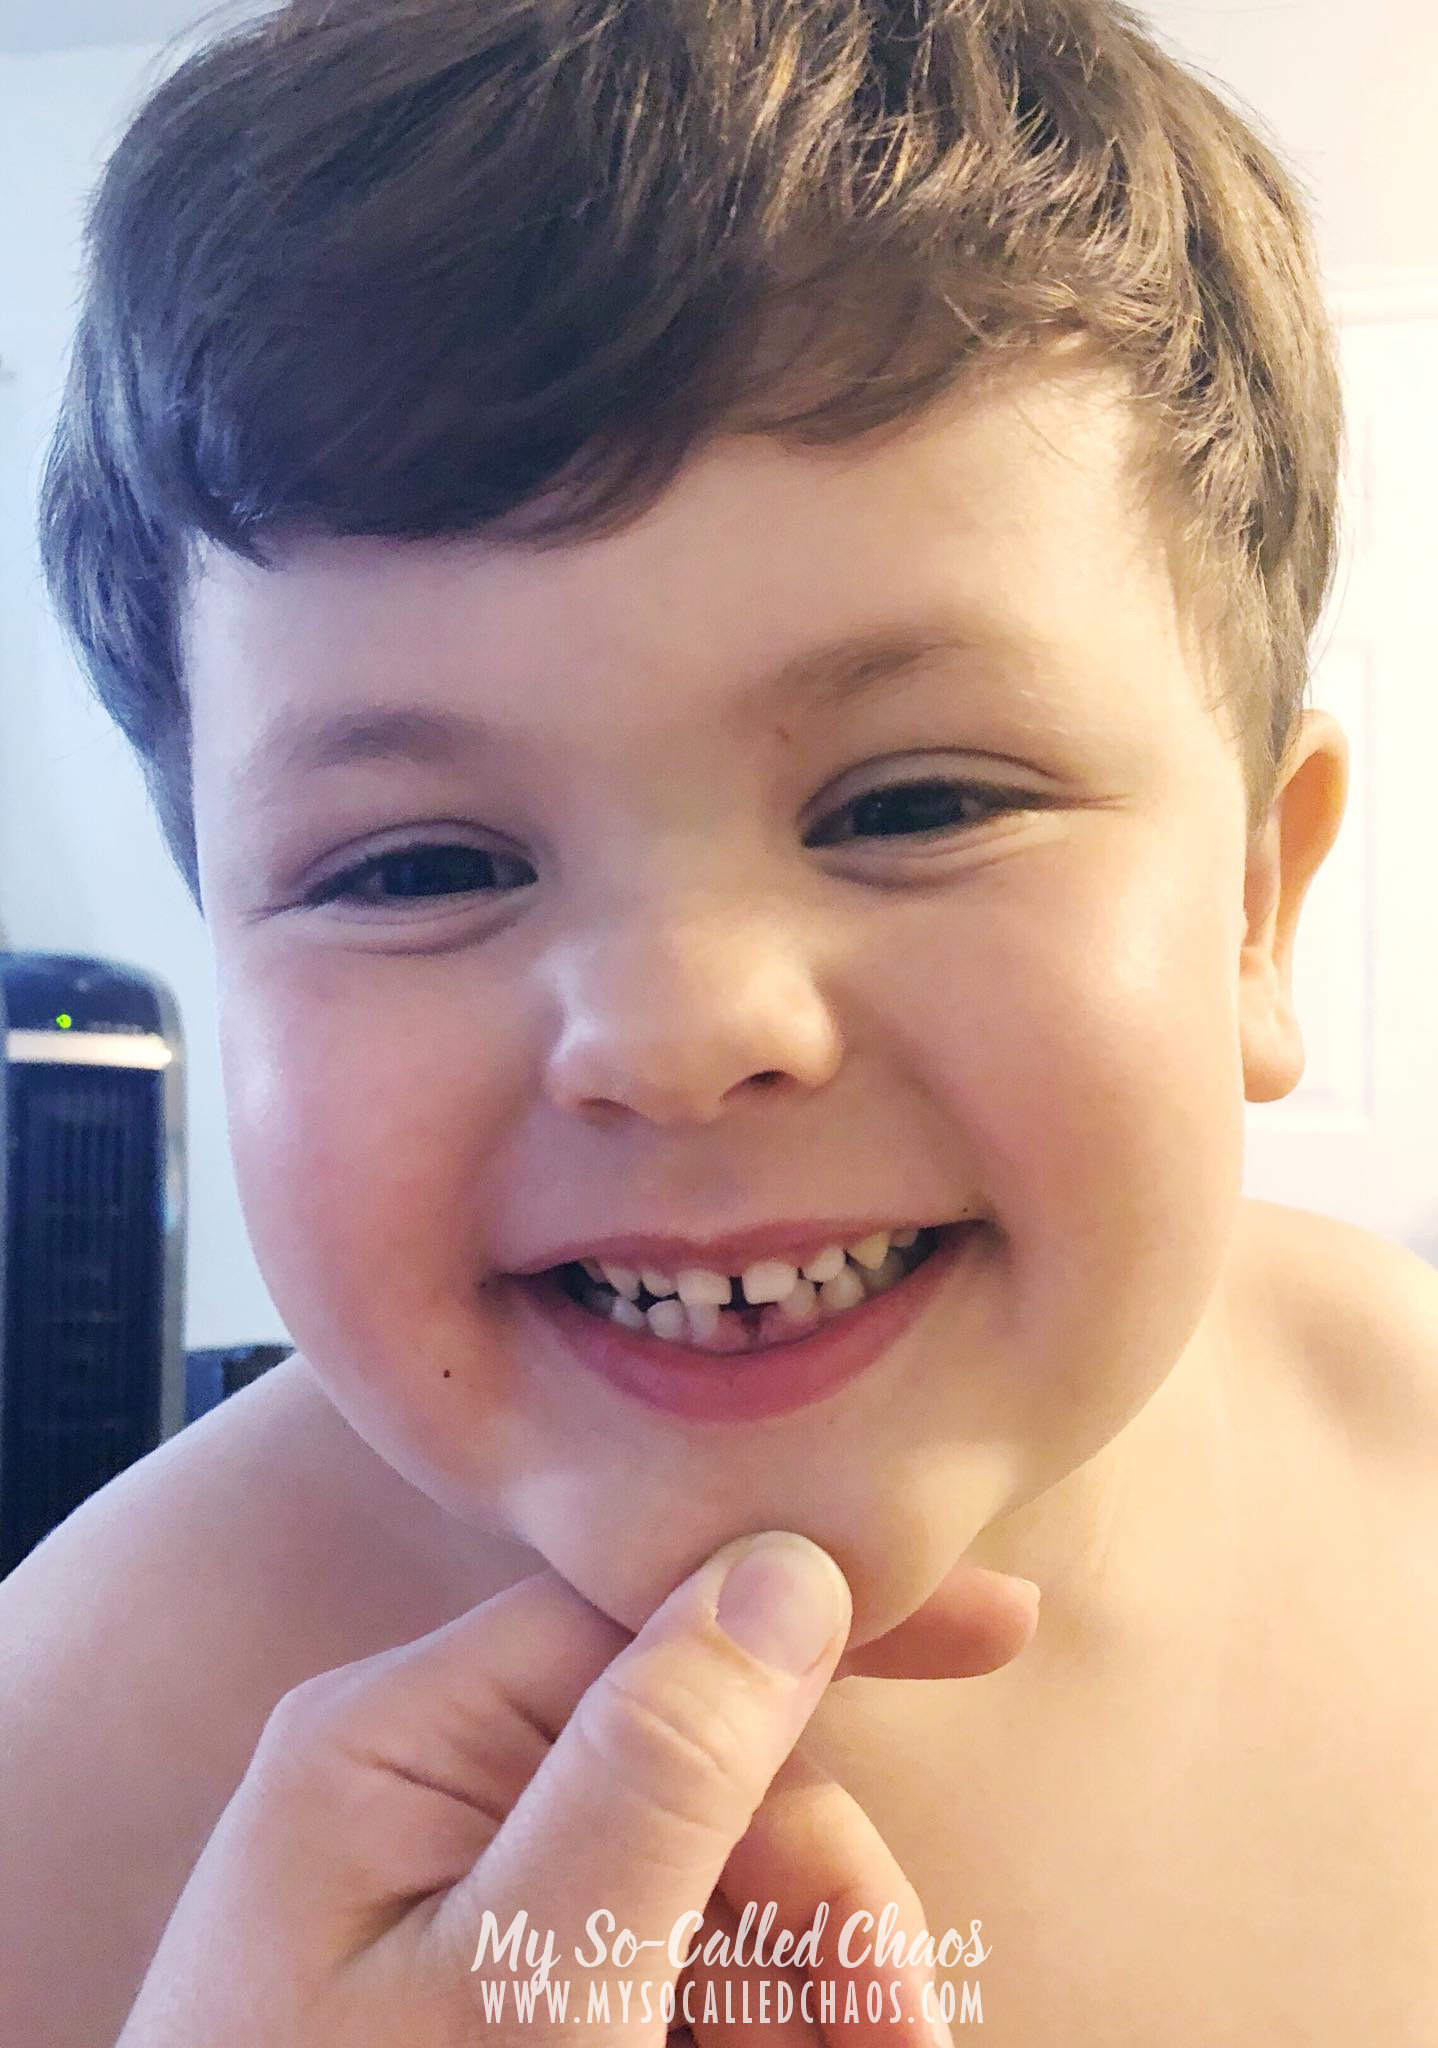 5 year old boy smiling and showing off that he lost his first tooth.